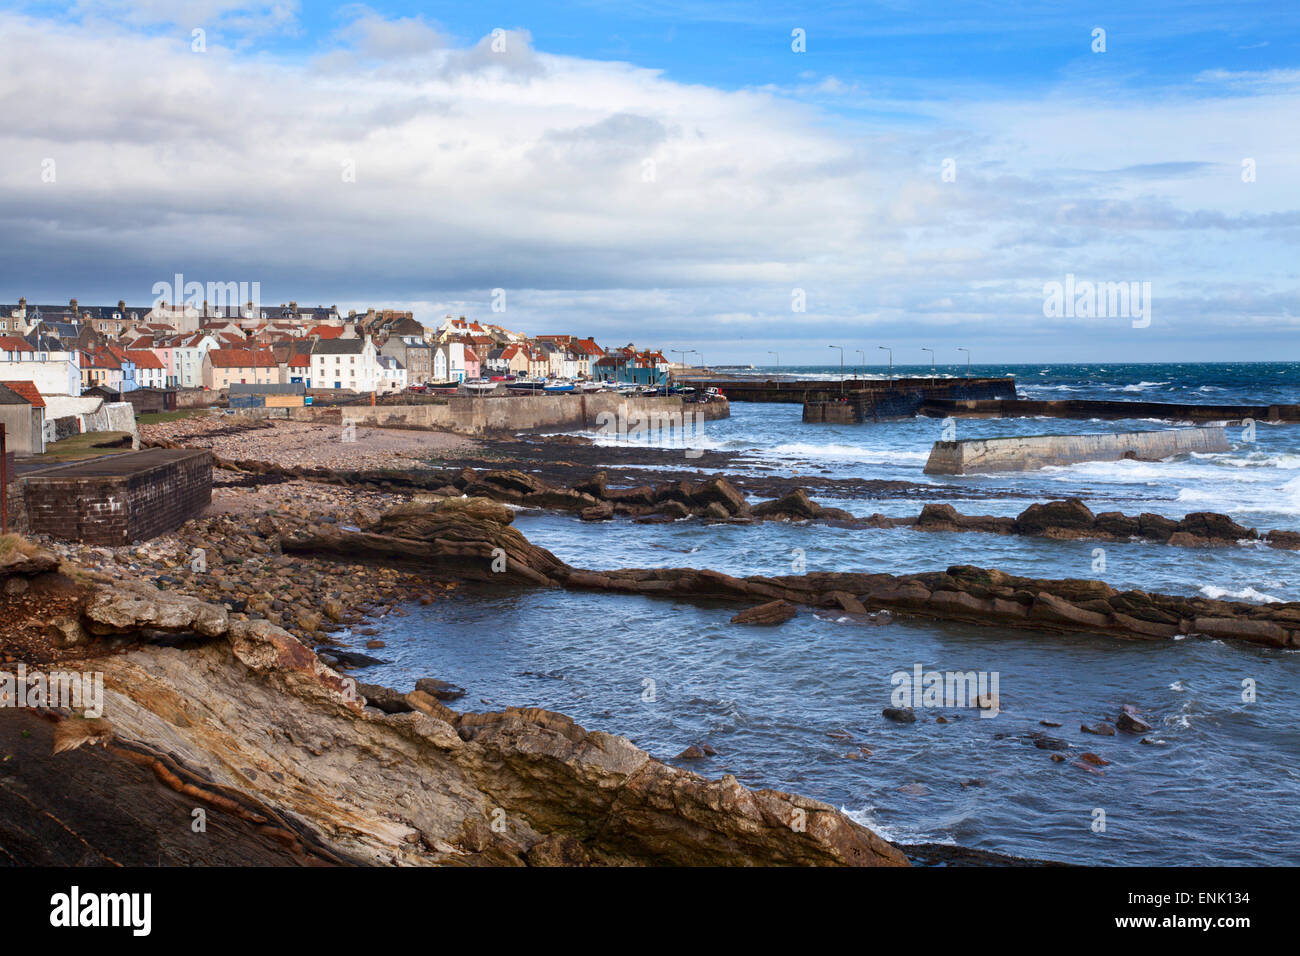 St. Monans fishing village and harbour from the Fife Coast Path, Fife, Scotland, United Kingdom, Europe - Stock Image